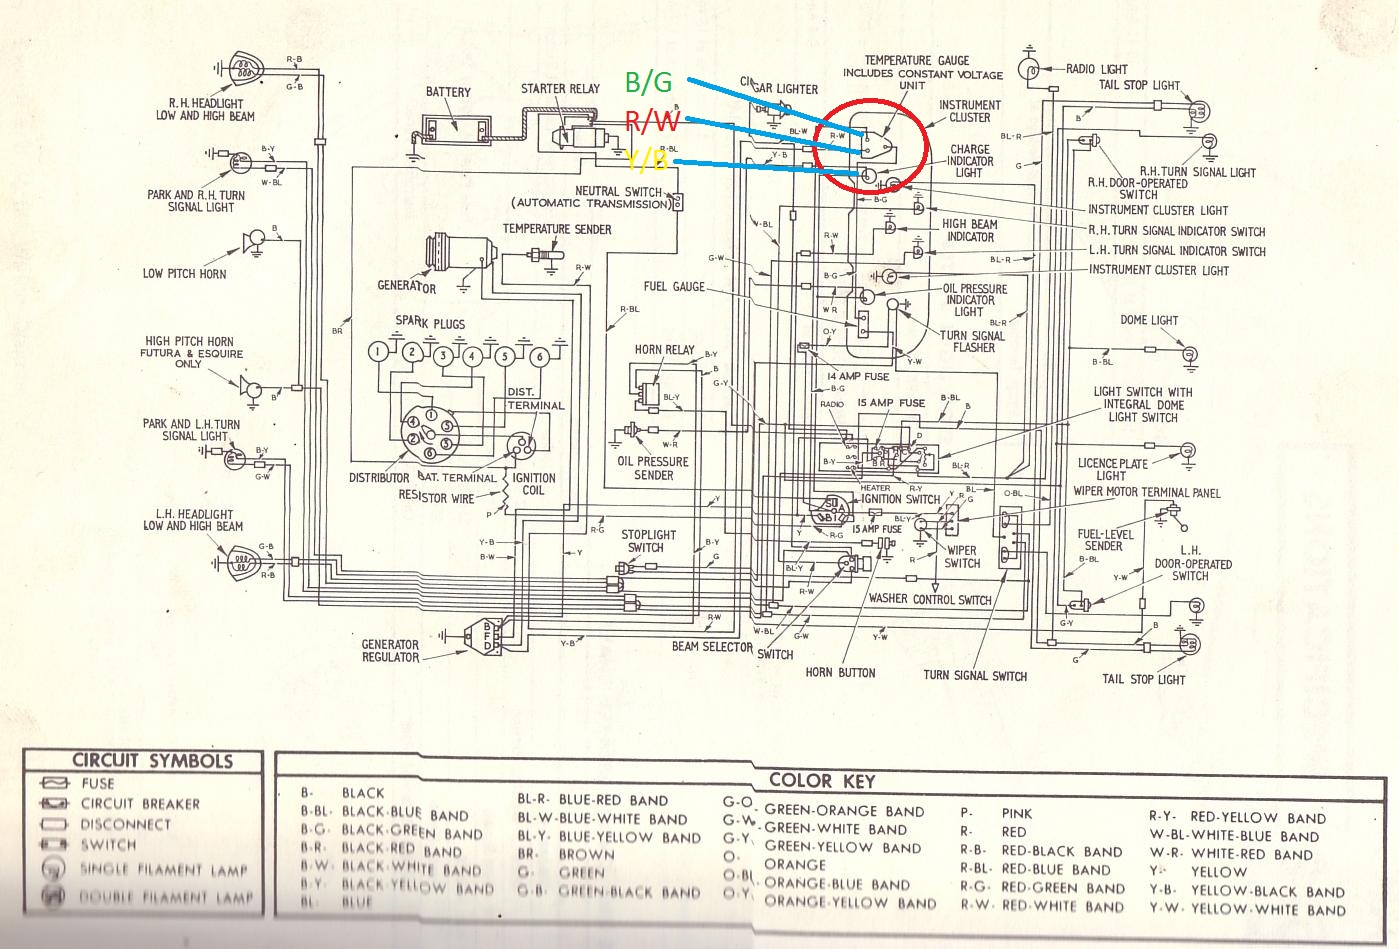 New Circuits Page 45 Amplifier Described Here Uses Two Small Amplifiers Like Lm380 Mounted 1964 Xm